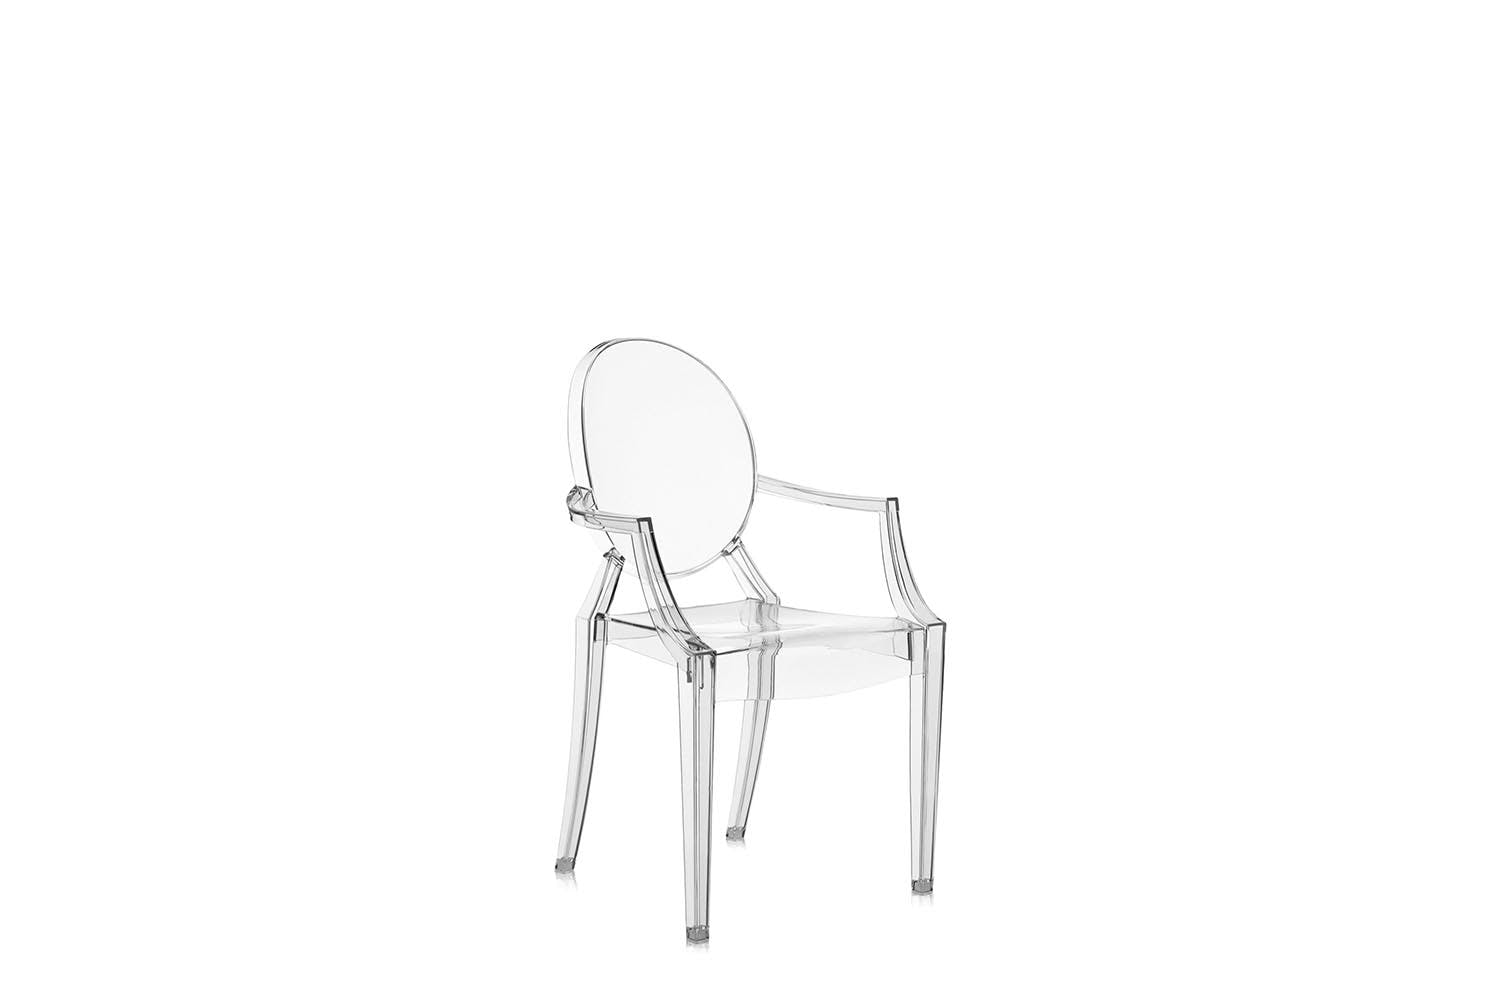 lou lou ghost chair with arms by philippe starck for kartell  - lou lou ghost chair with arms by philippe starck for kartell  spacefurniture